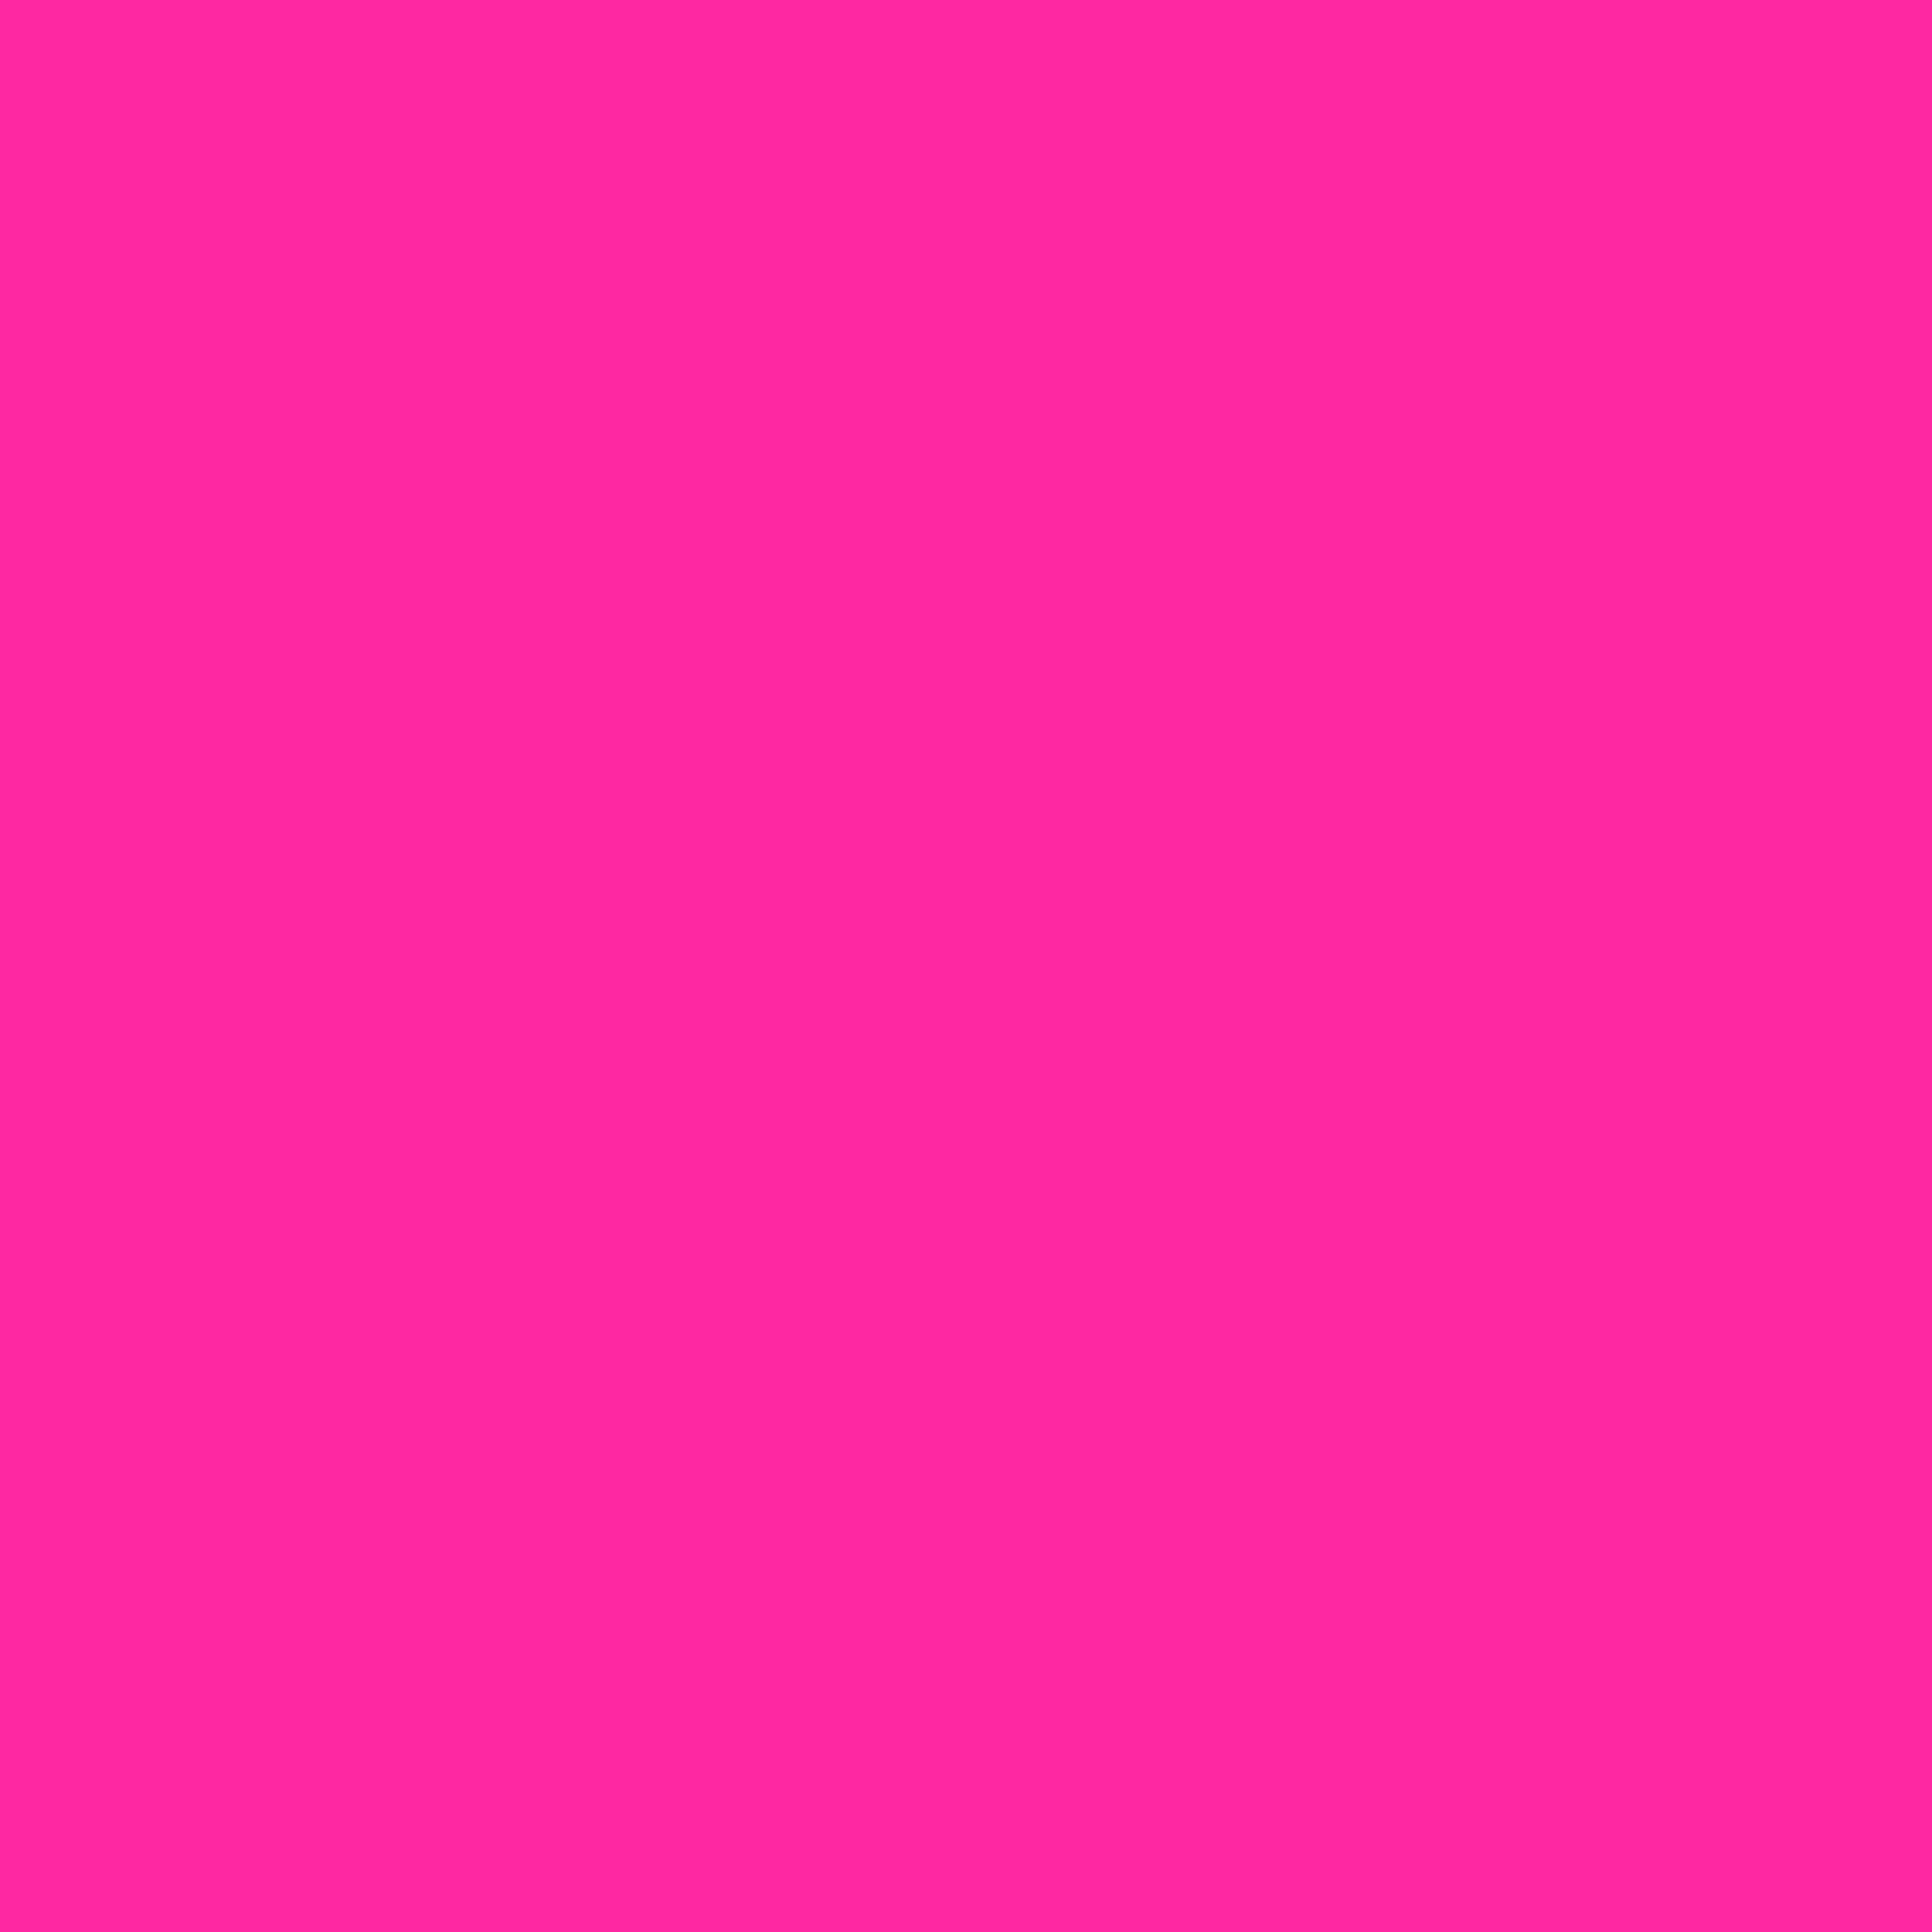 3600x3600 Persian Rose Solid Color Background